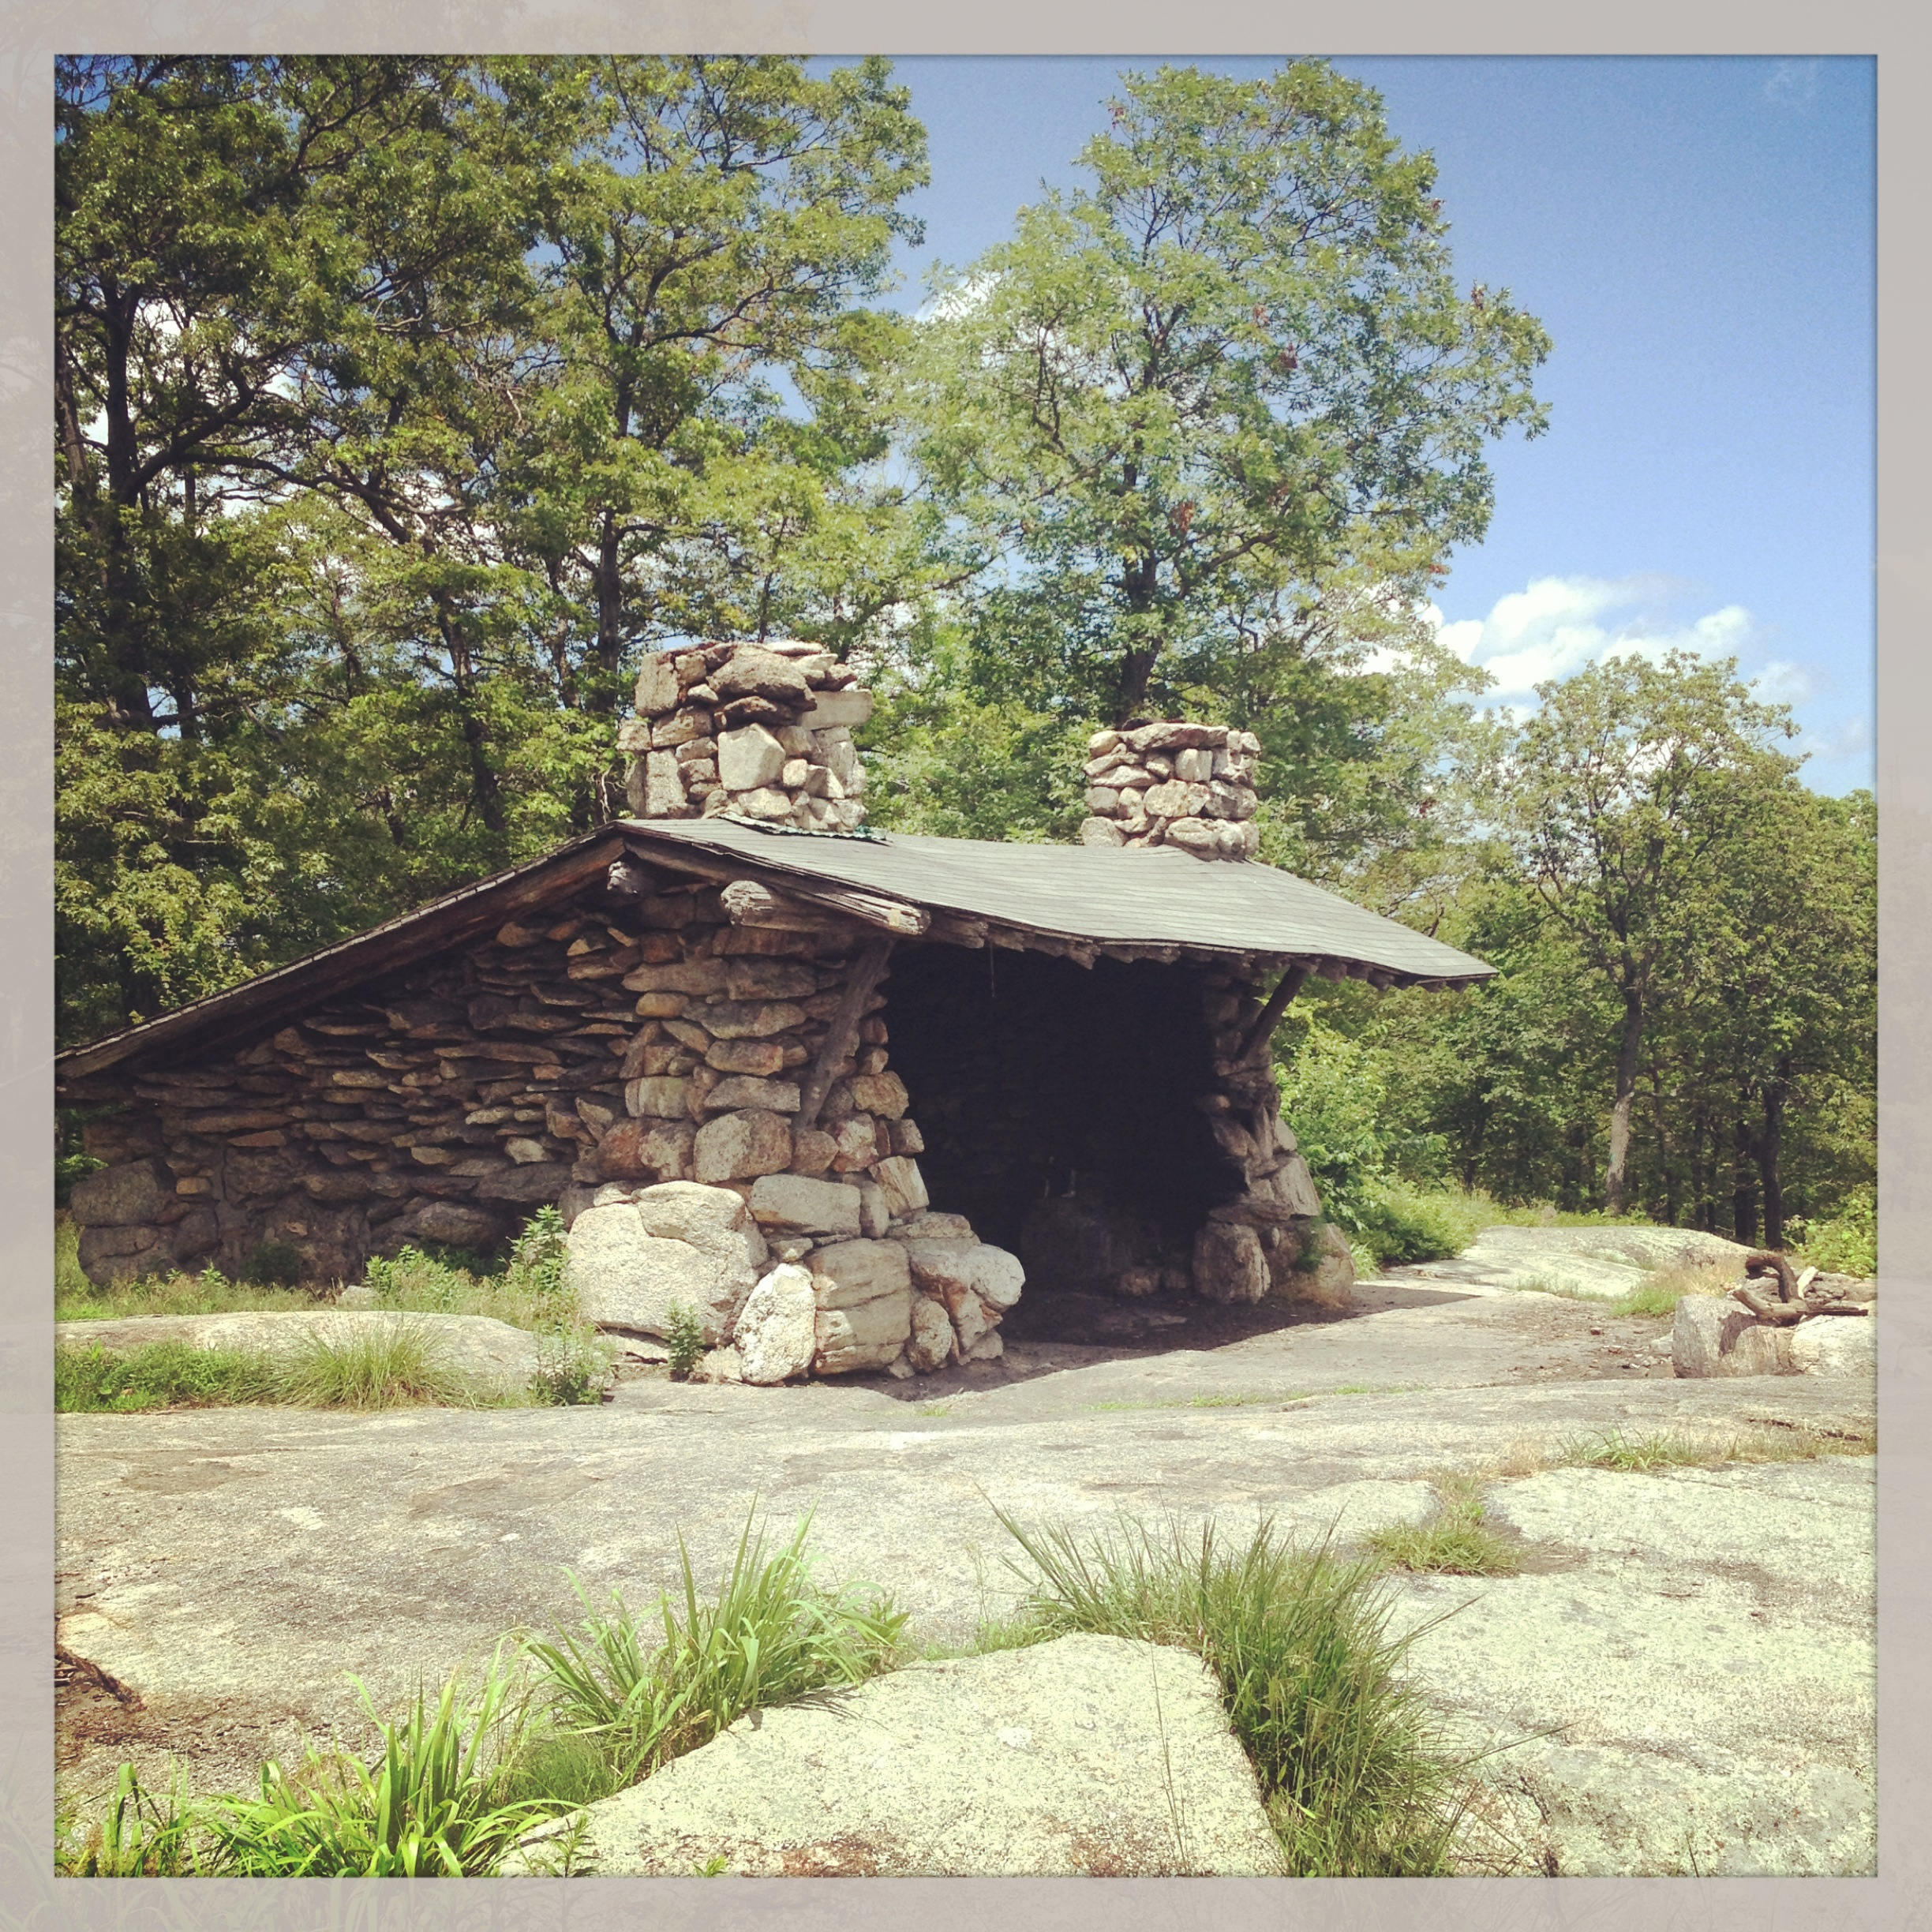 Tom Jones Shelter leanto, Harriman State Park